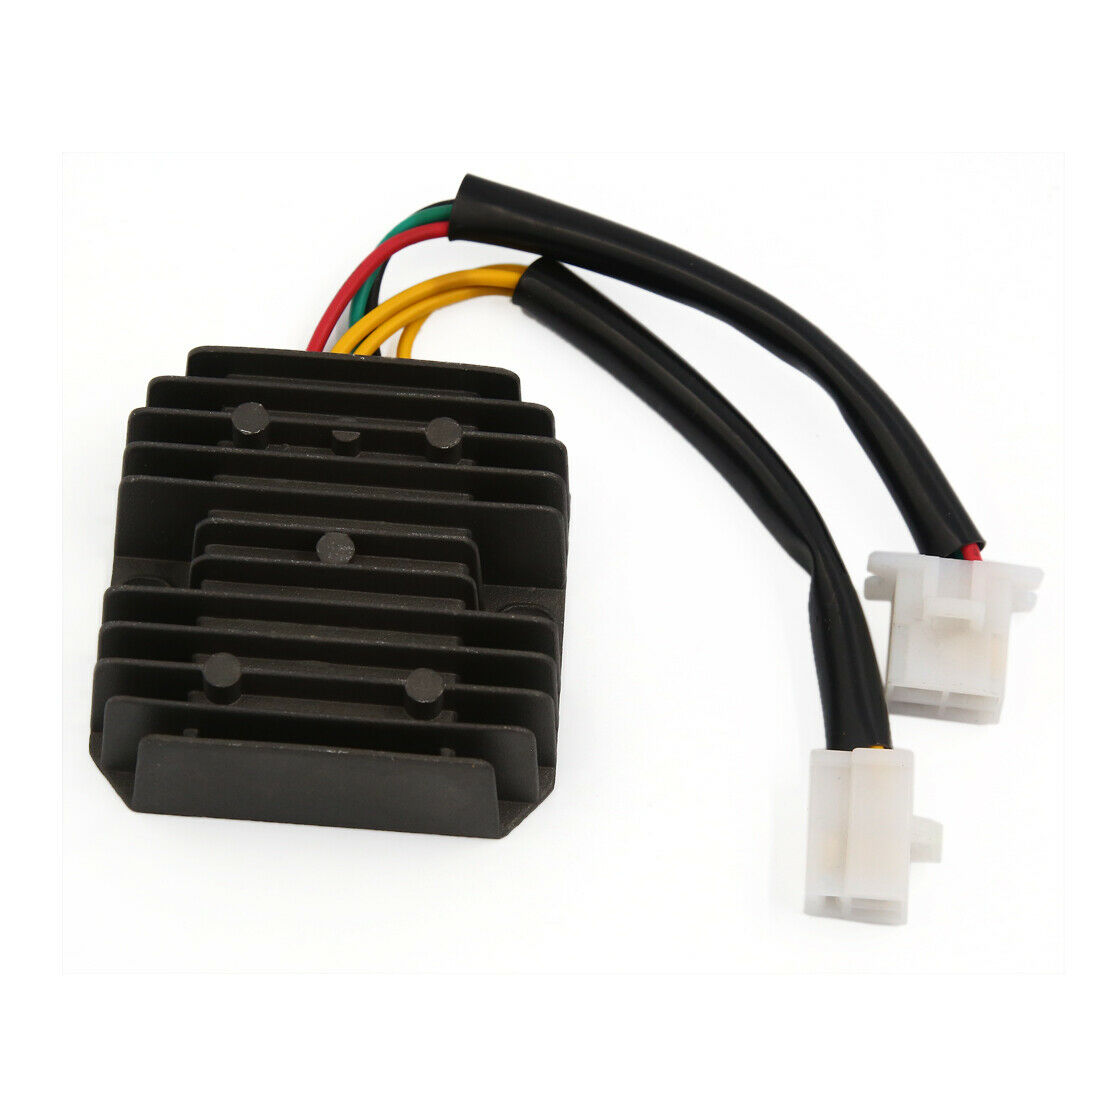 6 Pin Motorcycle Voltage Wiring Regulator Rectifier For Honda Ch125 1 Of 3free Shipping See More